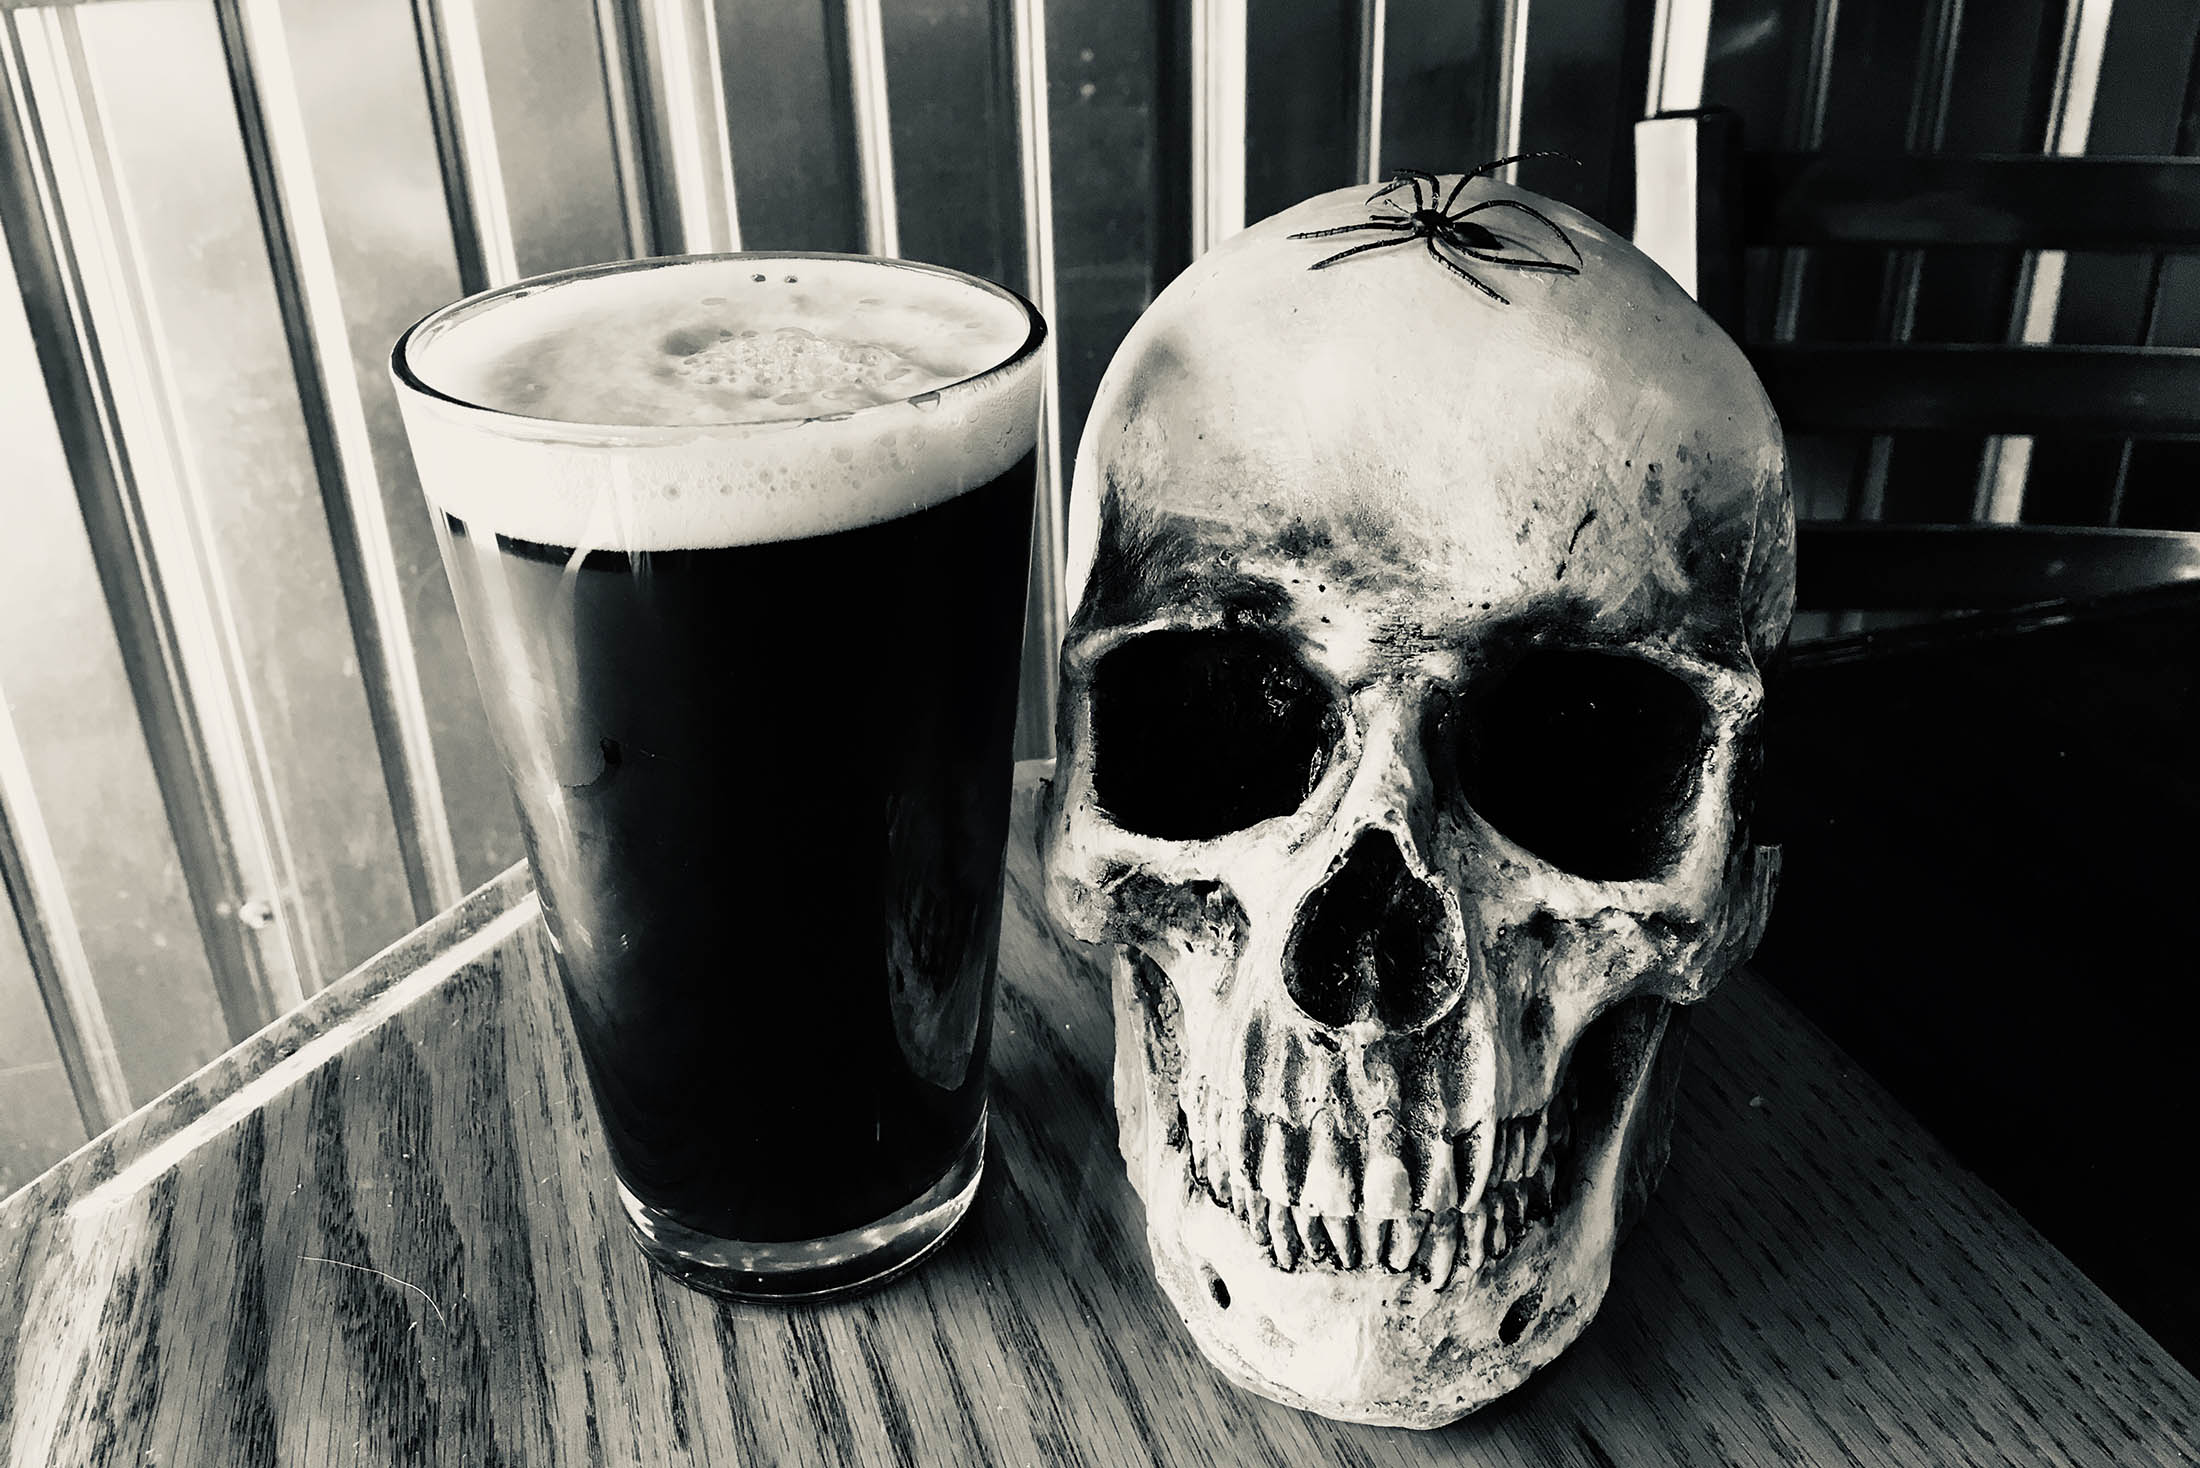 Pint of beer with a skull